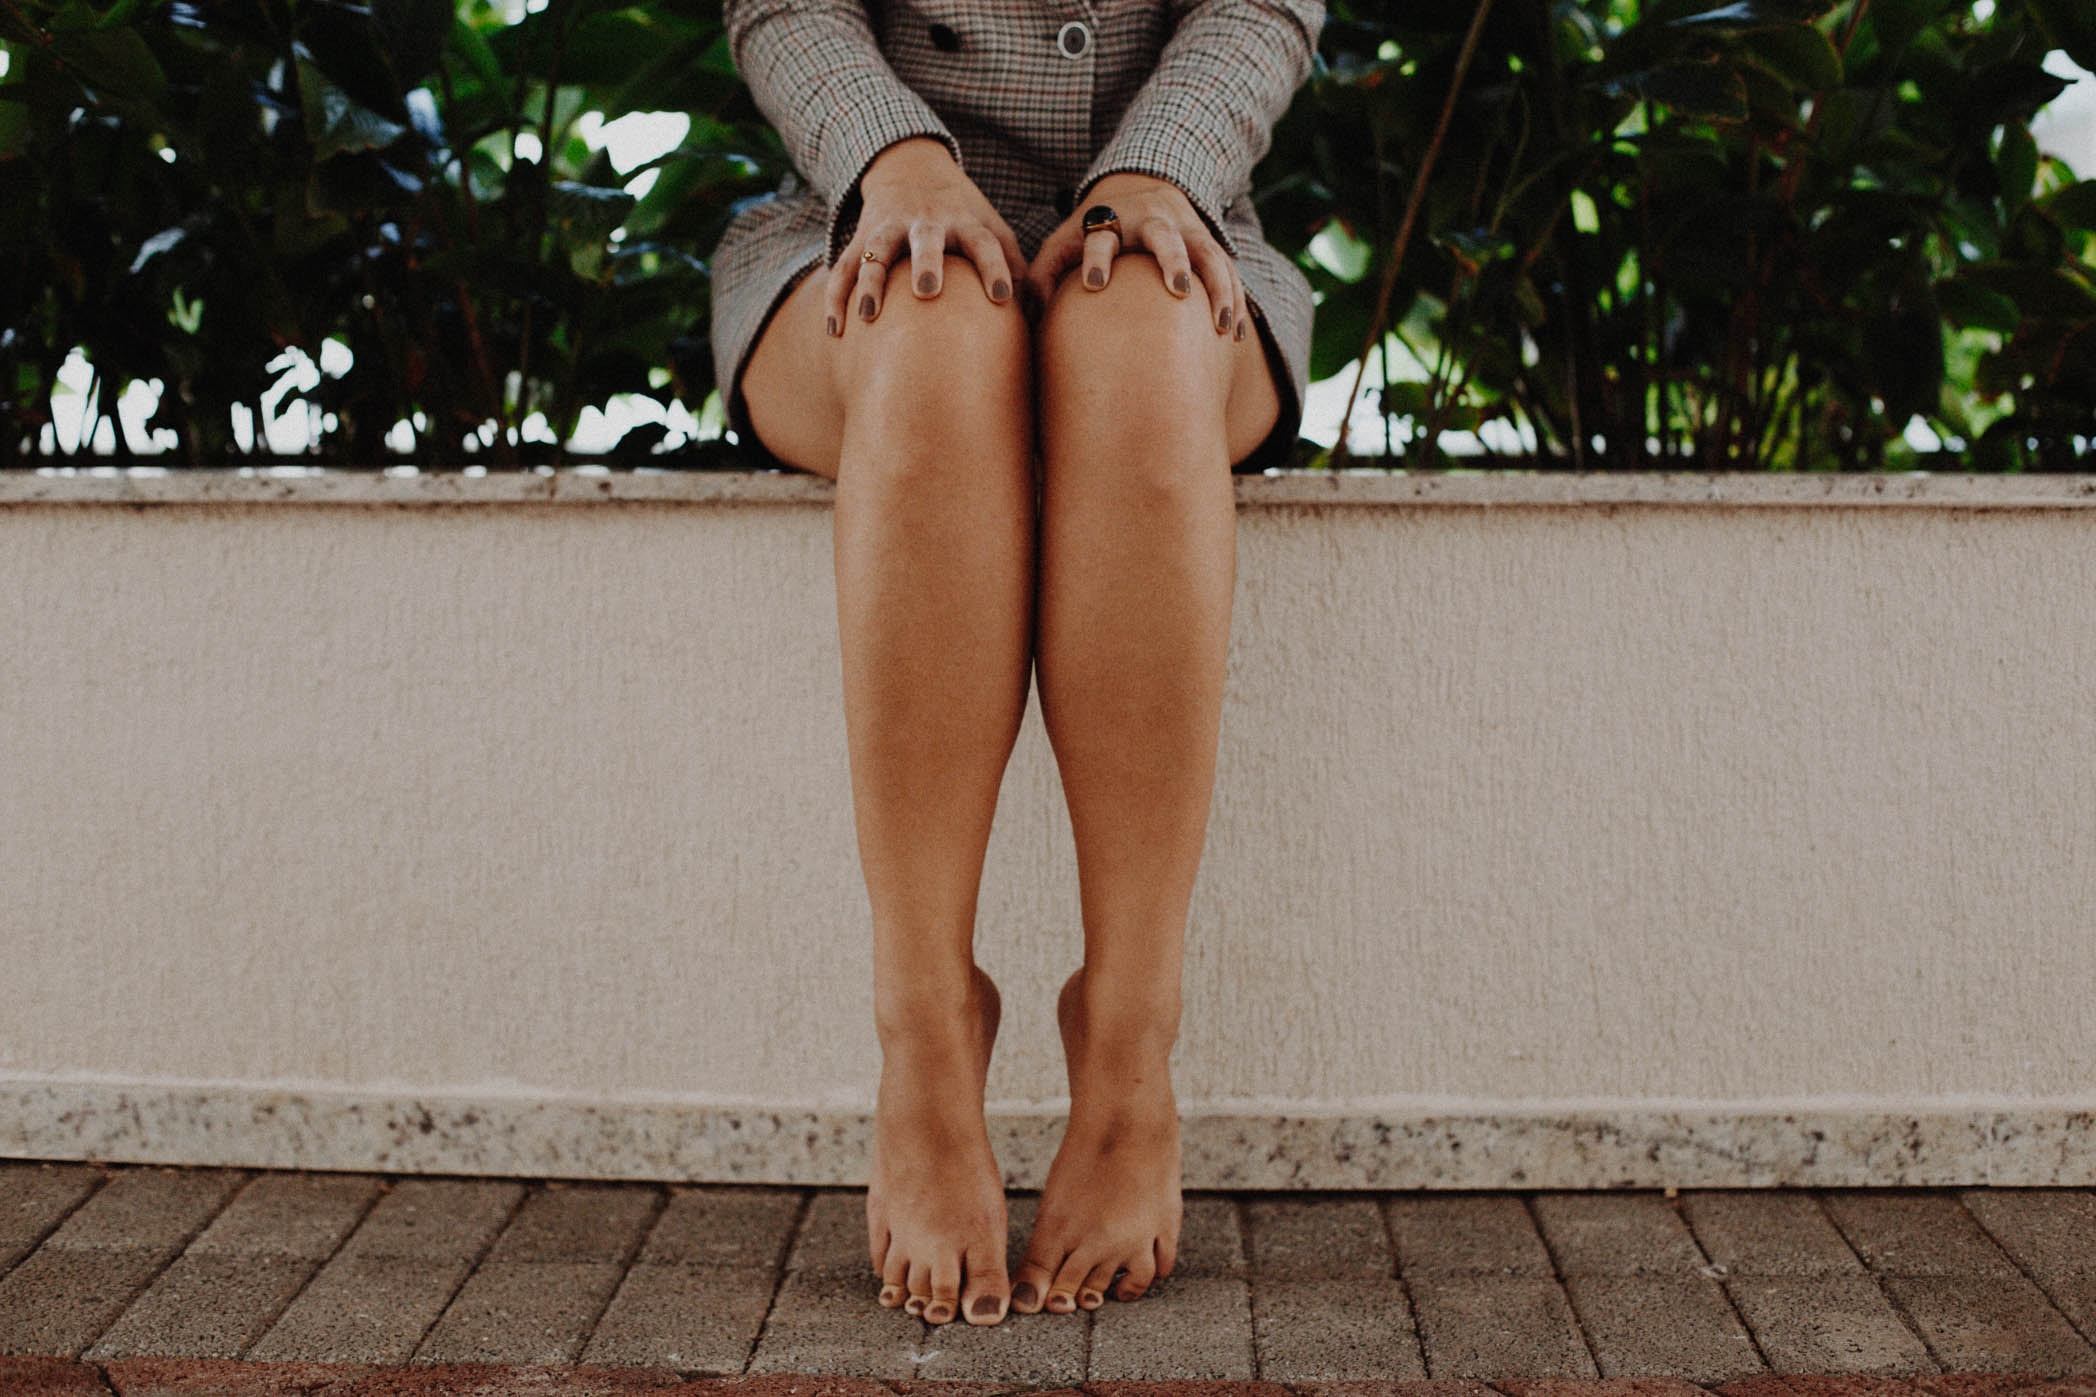 How to get toned thighs and leaner legs fitness guide   Elle Blonde Luxury Lifestyle Destination Blog